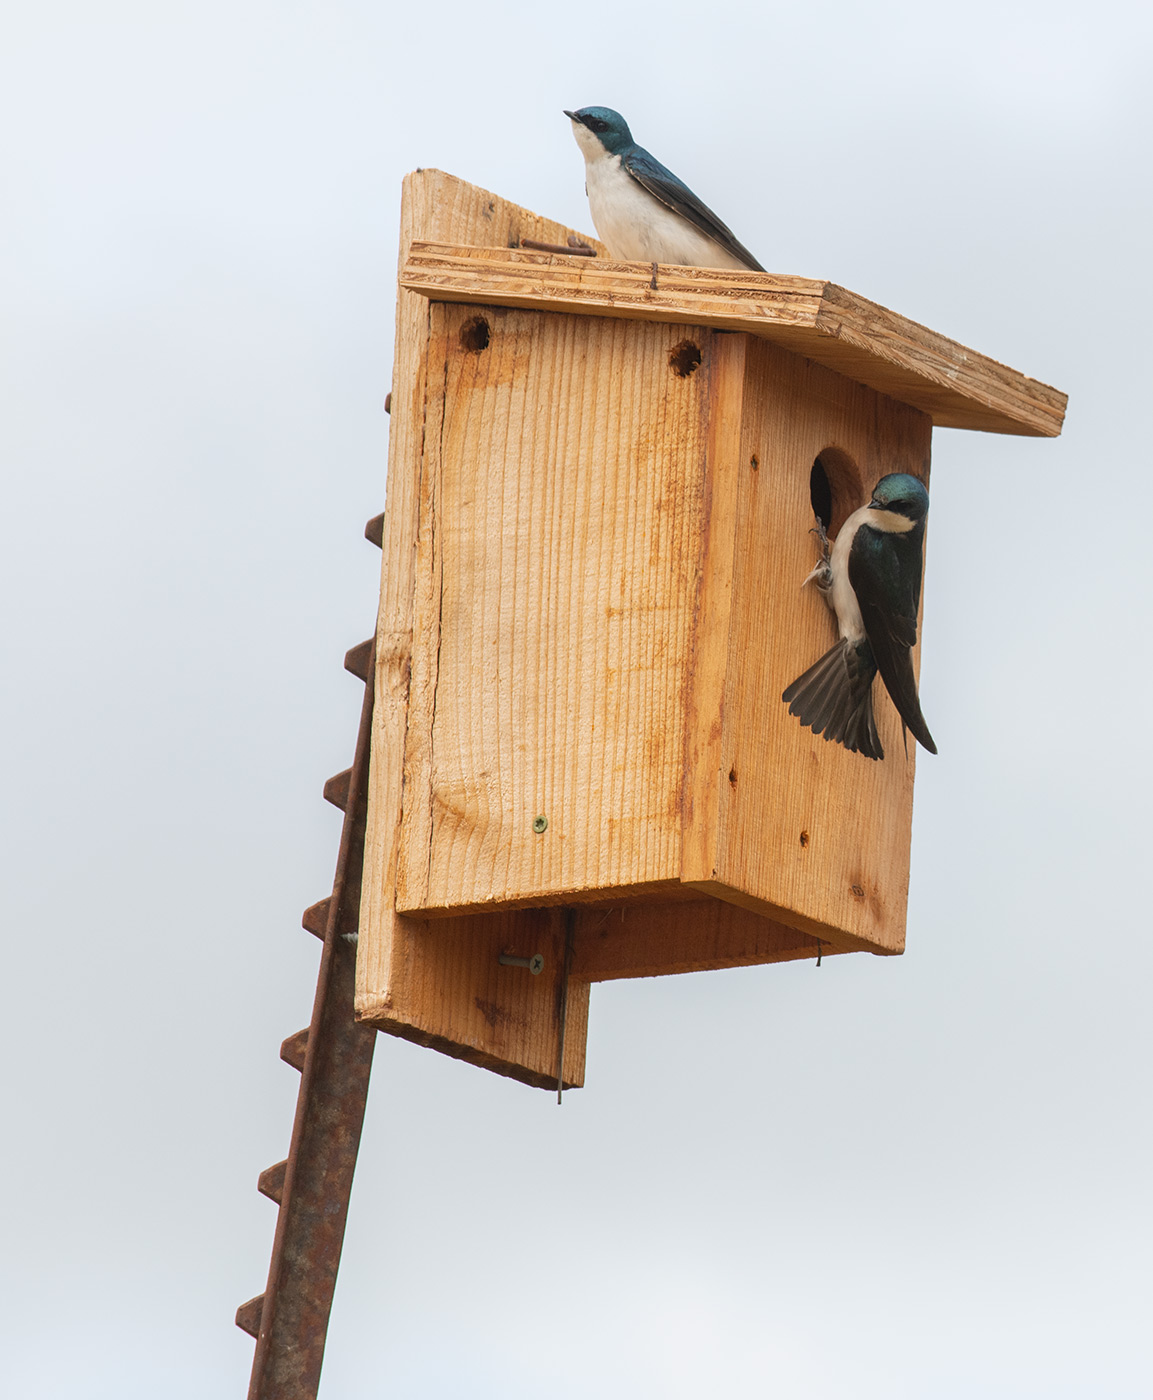 Tree swallow pair on birdhouse